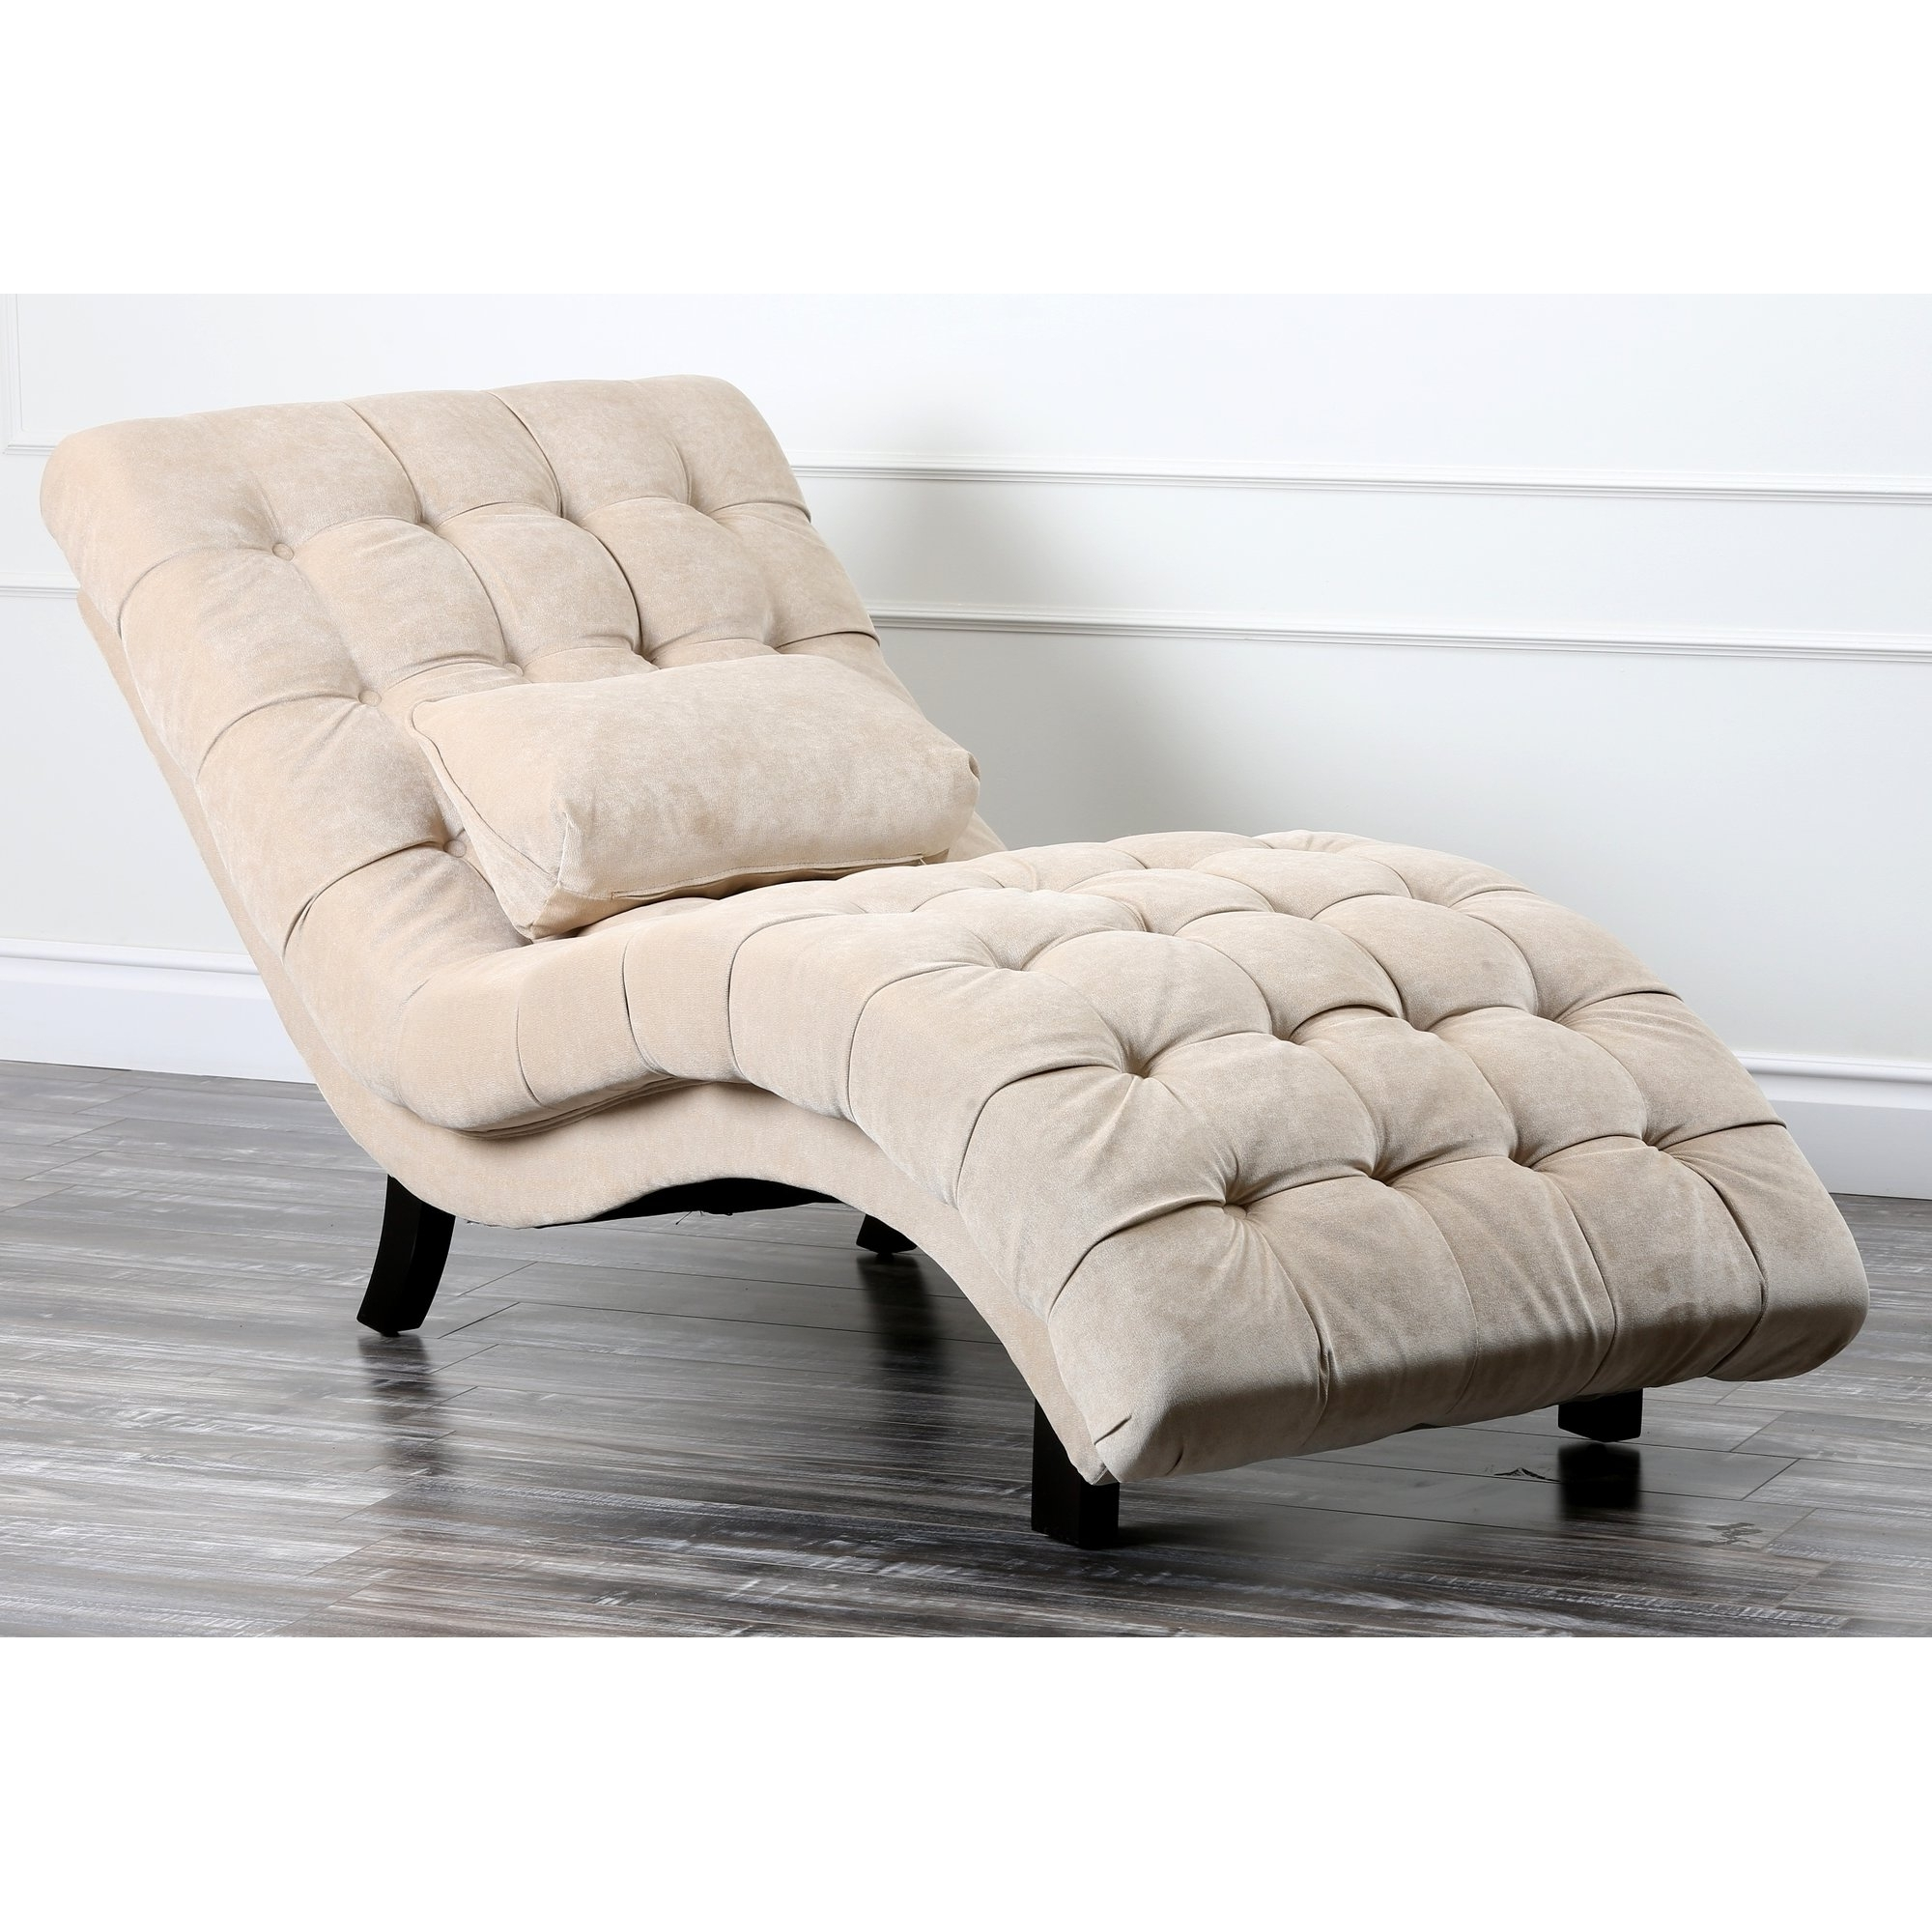 Favorite Chaise Lounge Chair Indoor • Lounge Chairs Ideas Intended For Chaise Lounge Chairs In Toronto (View 7 of 15)